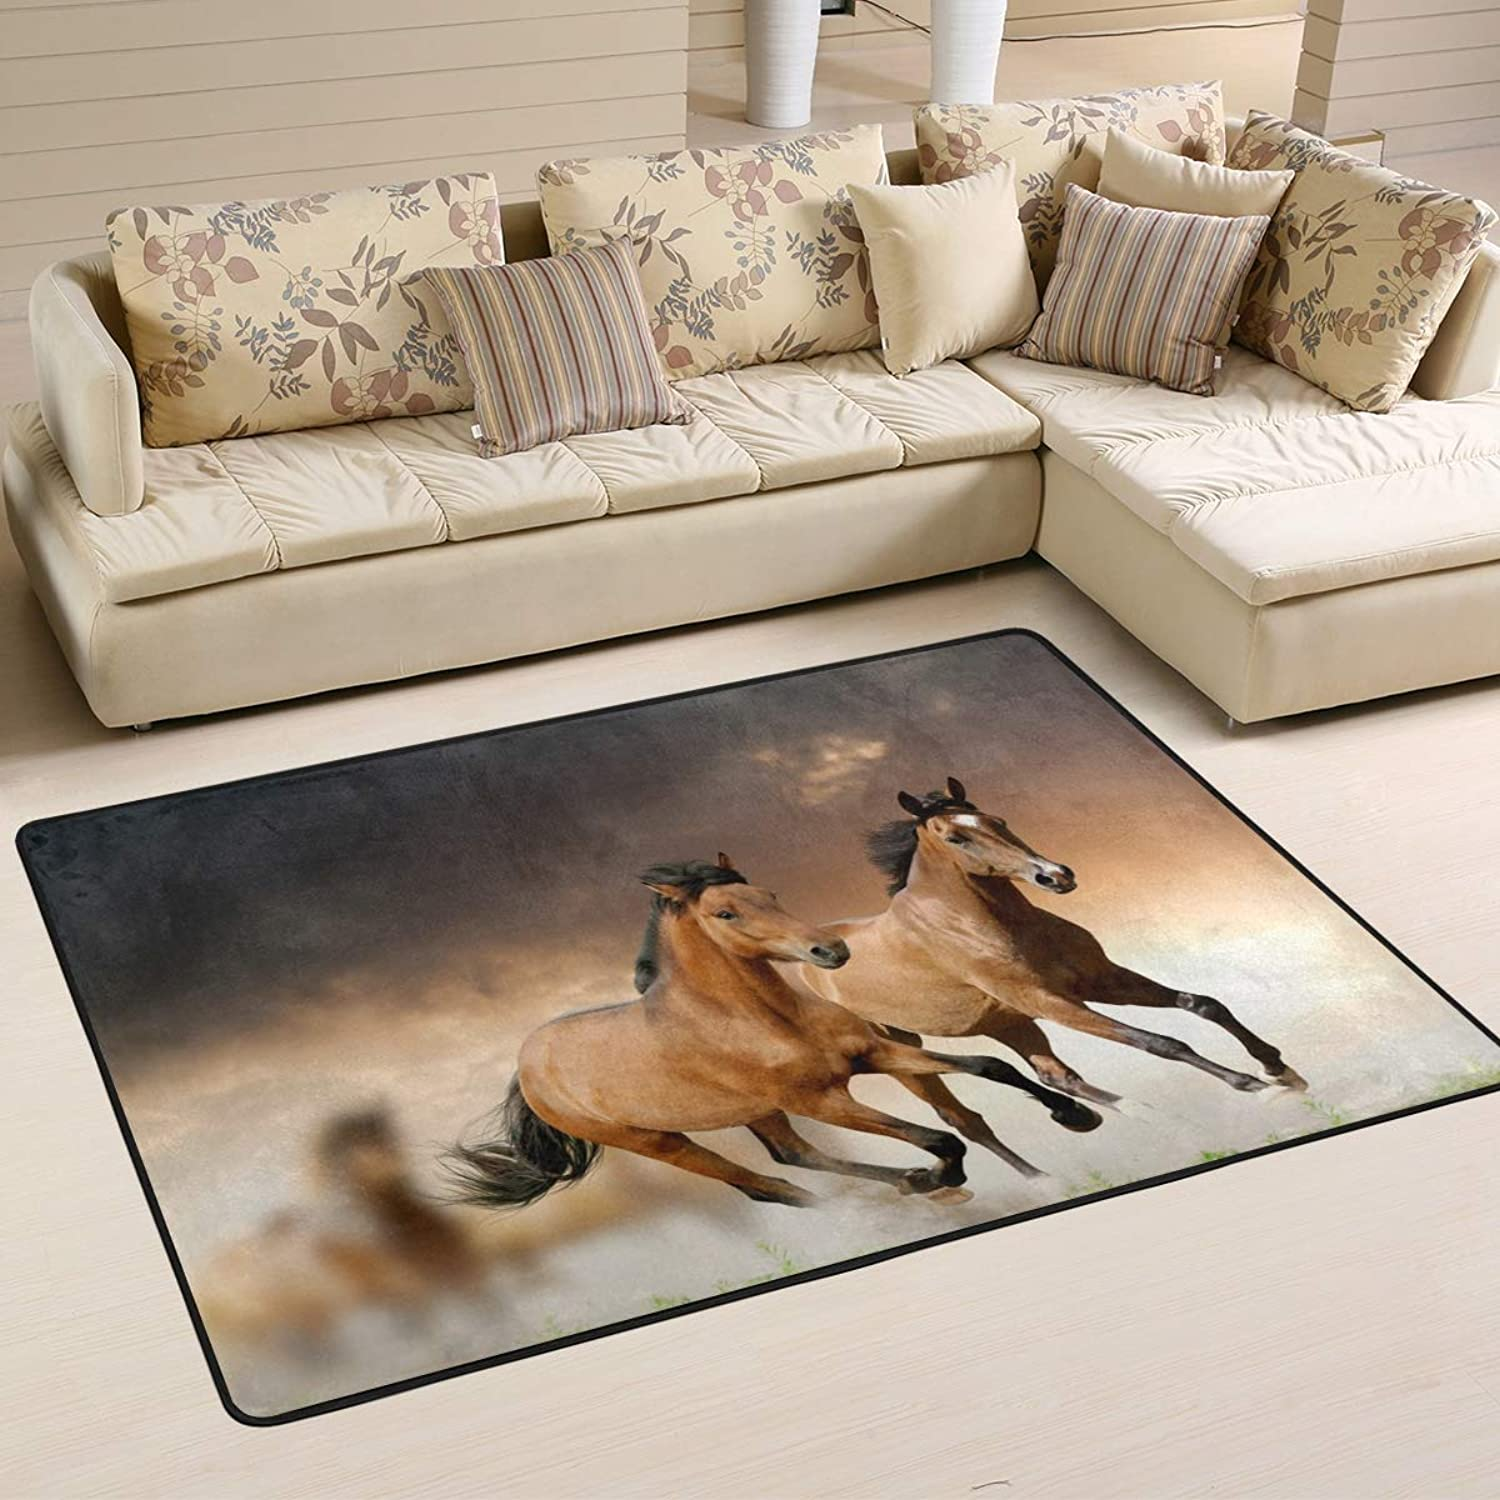 Area Rugs Doormats Horse Running Soft Carpet Mat 6'x4' (72x48 Inches) for Living Dining Dorm Room Bedroom Home Decorative